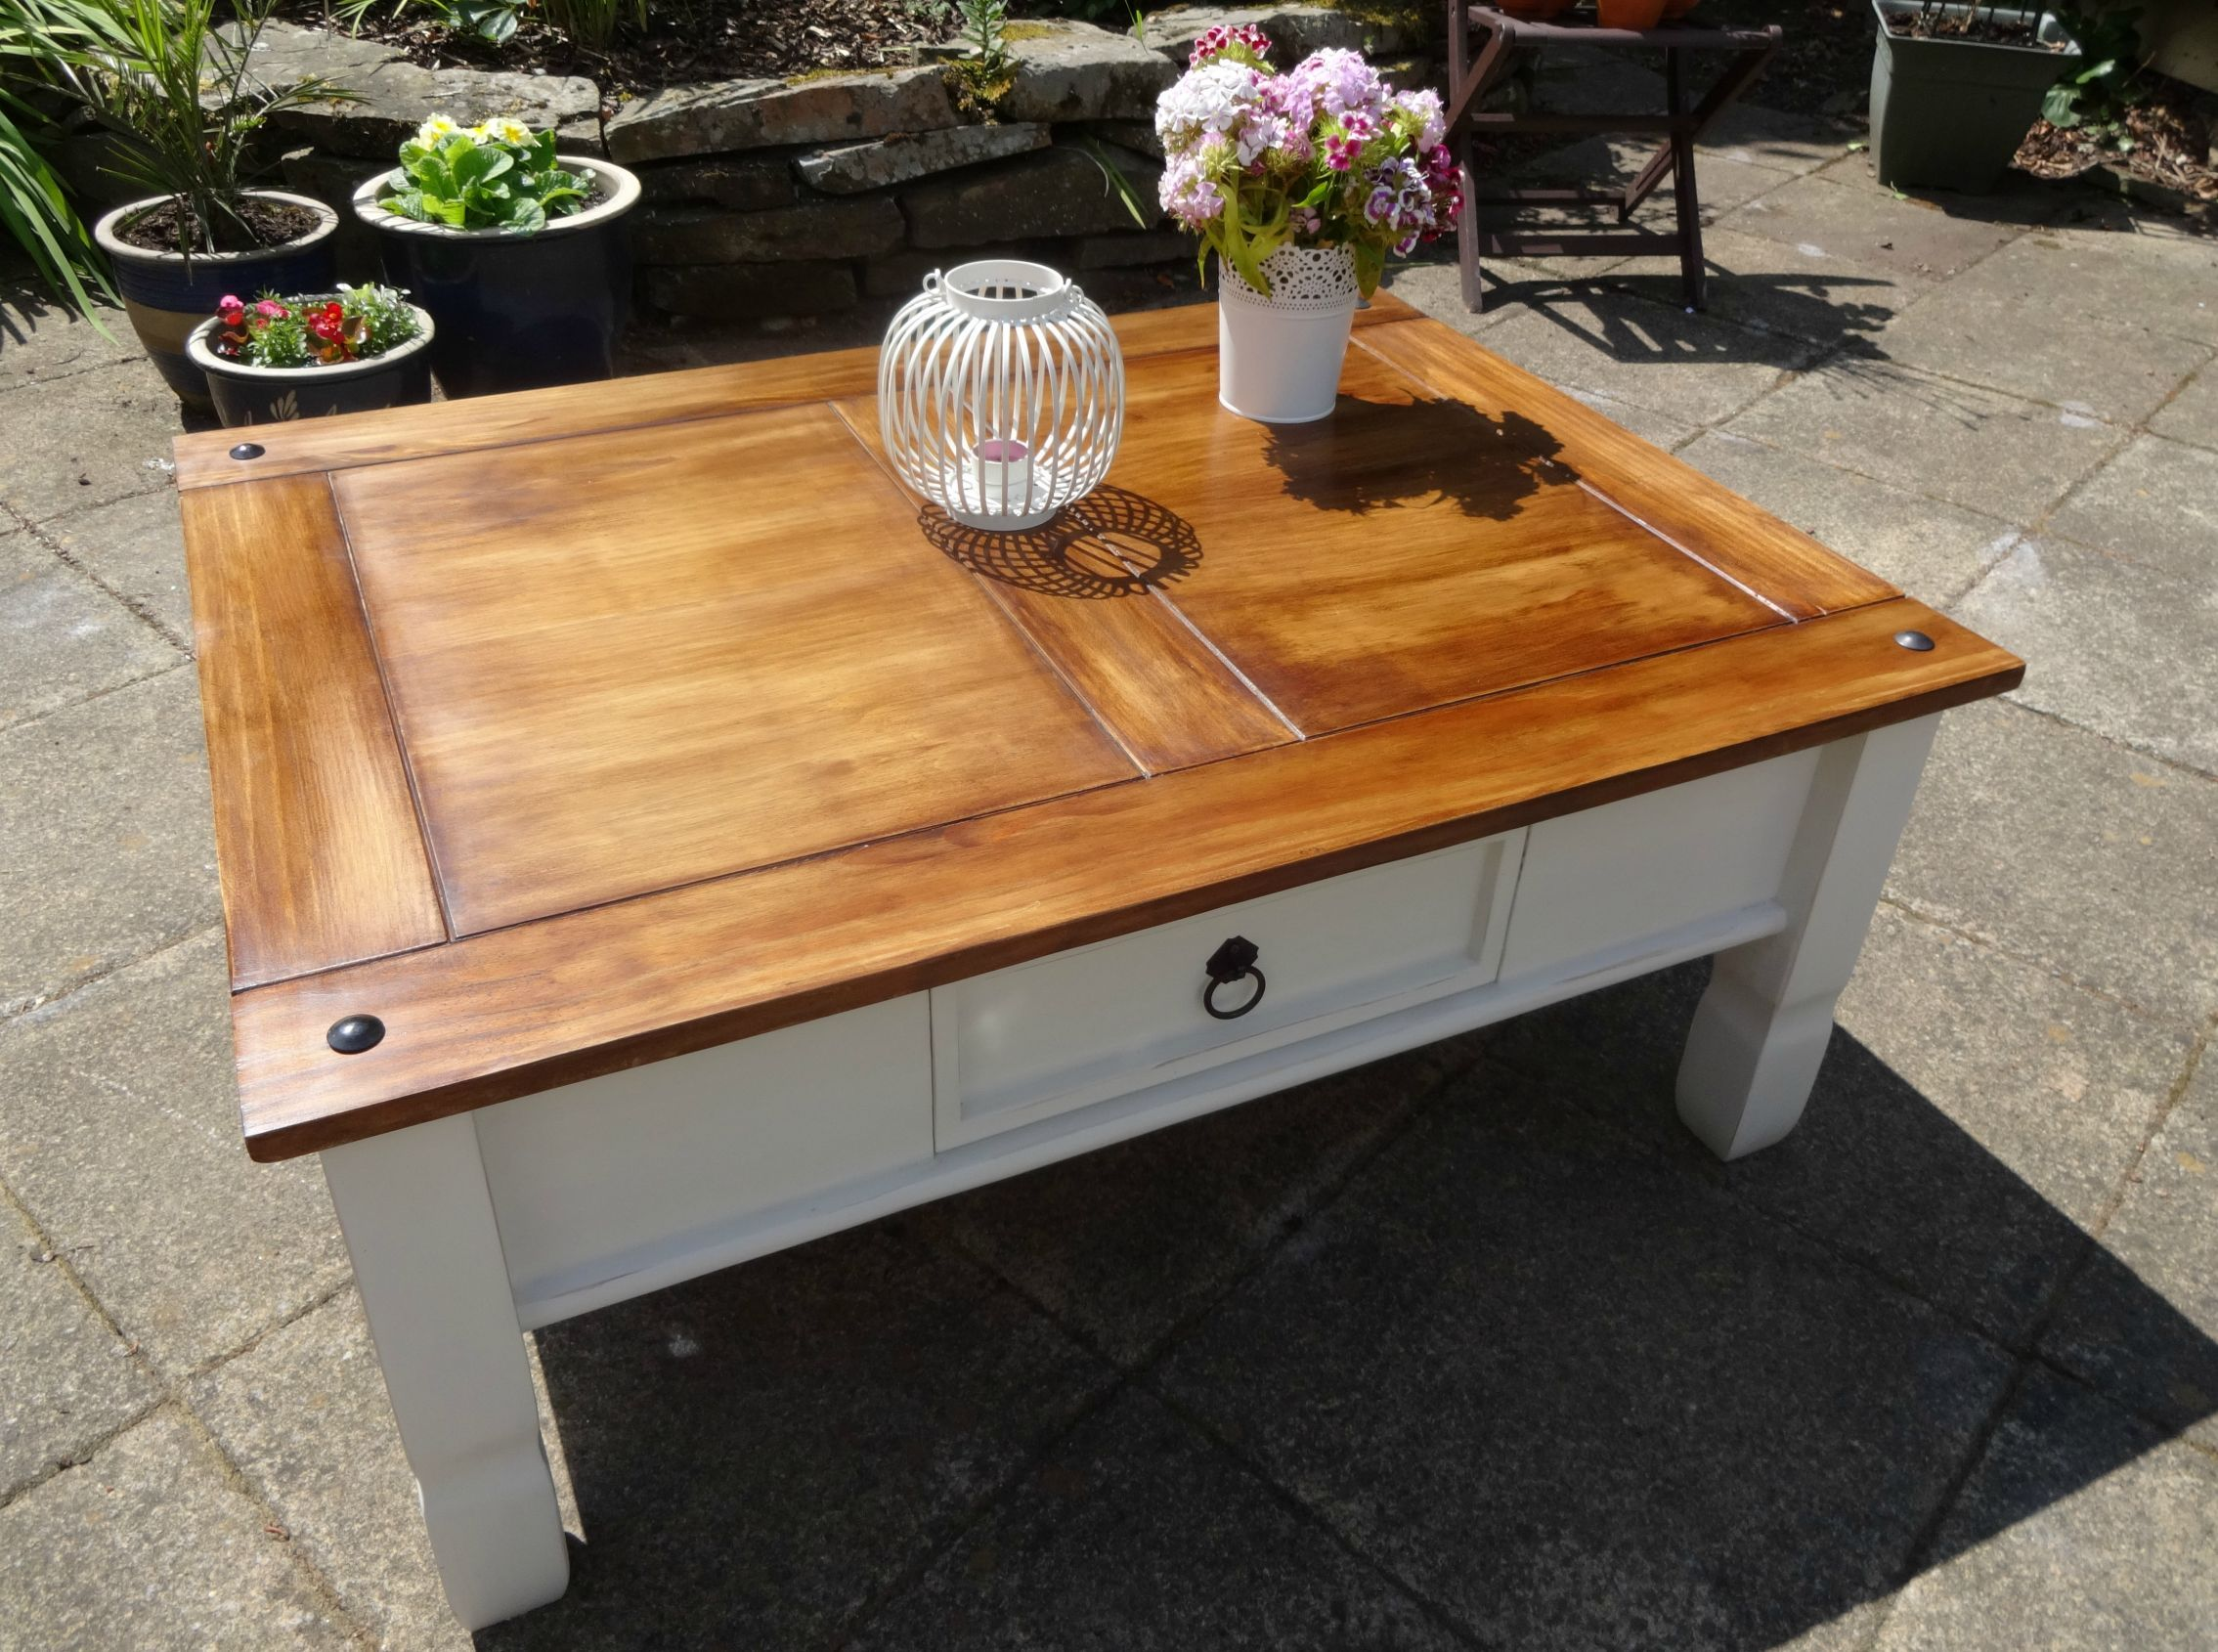 Upcycled Mexican Pine Coffee Table Annie Sloan Old White and Dark